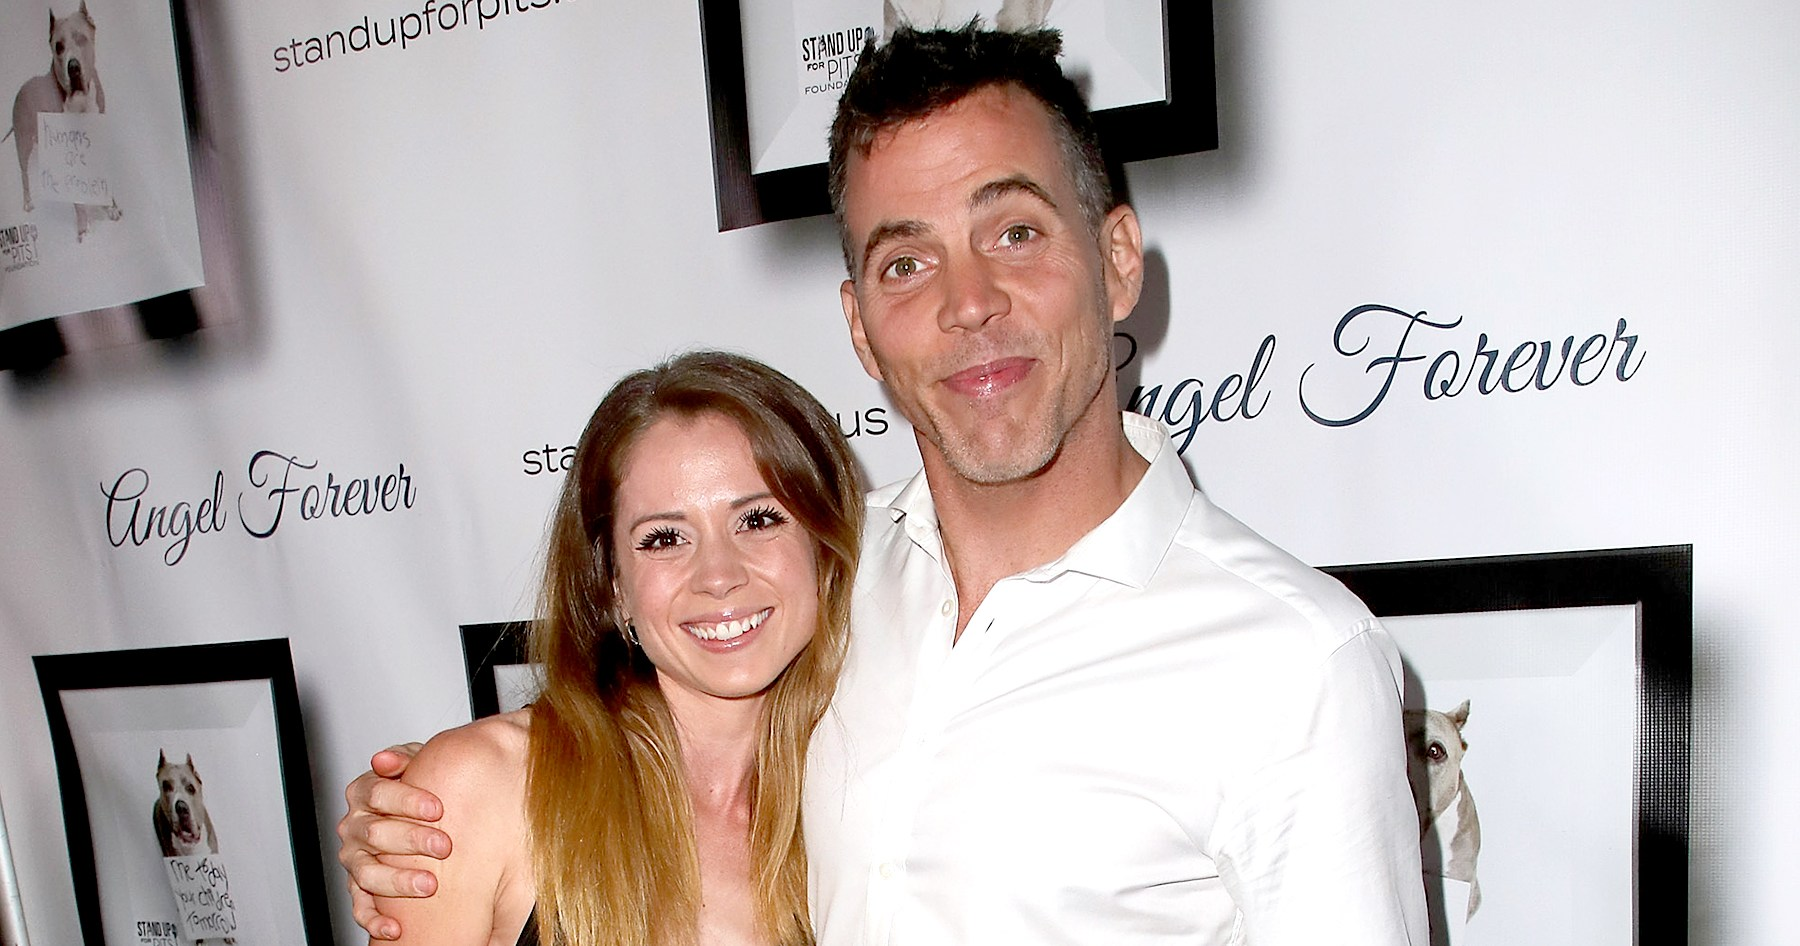 Steve-O Is Engaged to Girlfriend Lux Wright: See Her Ring!